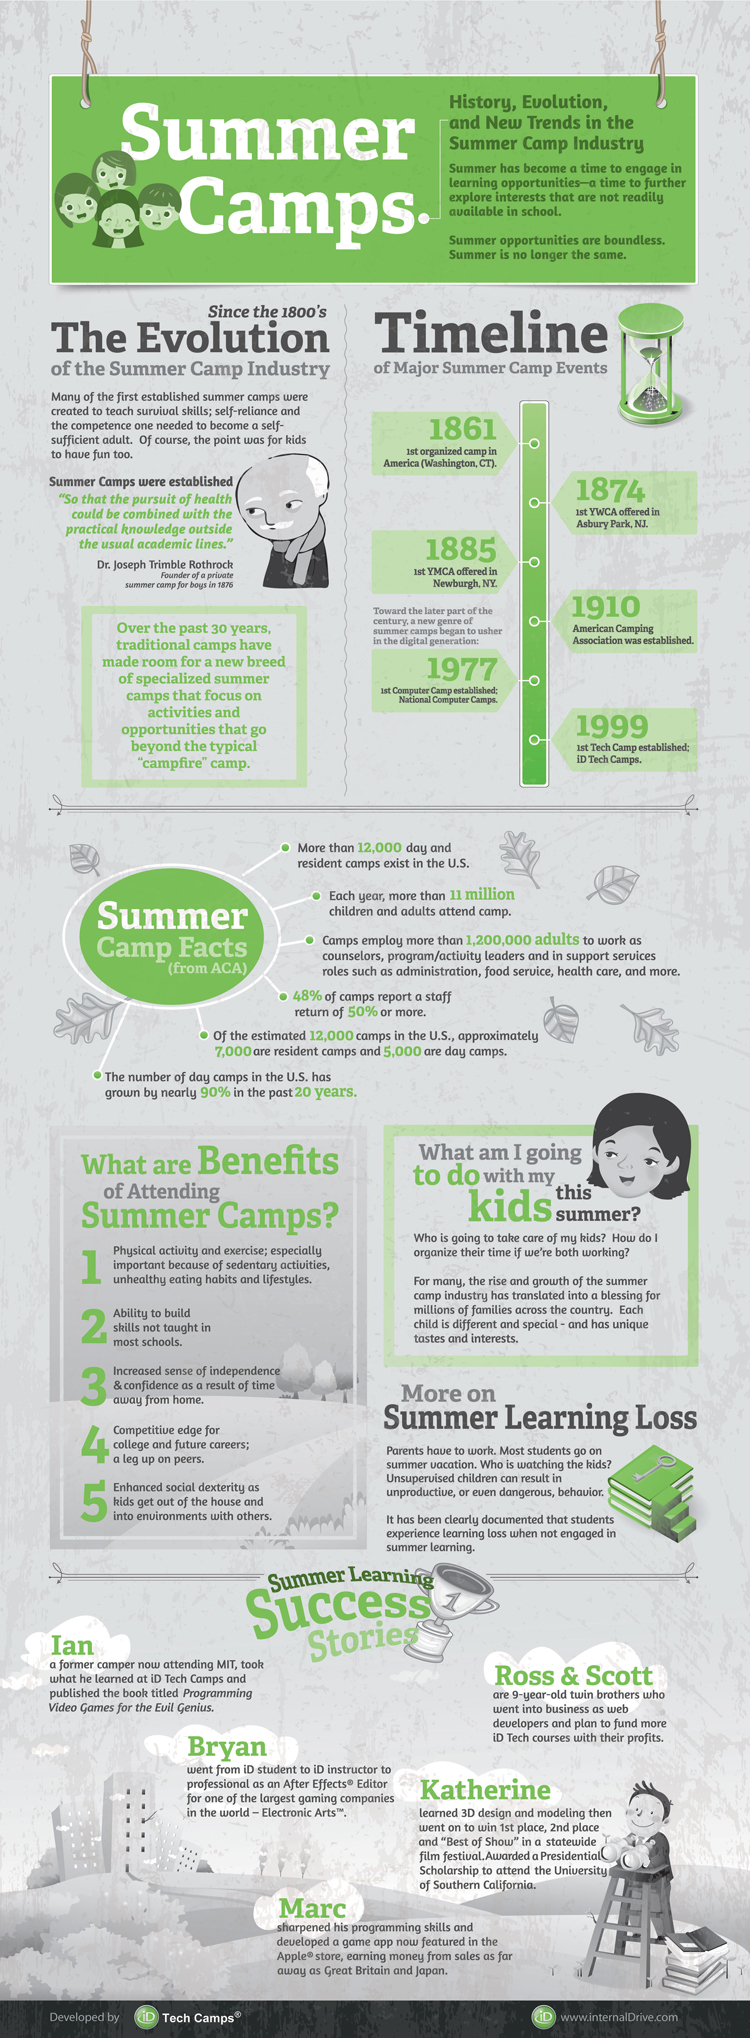 Summer Camp Benefits and Facts